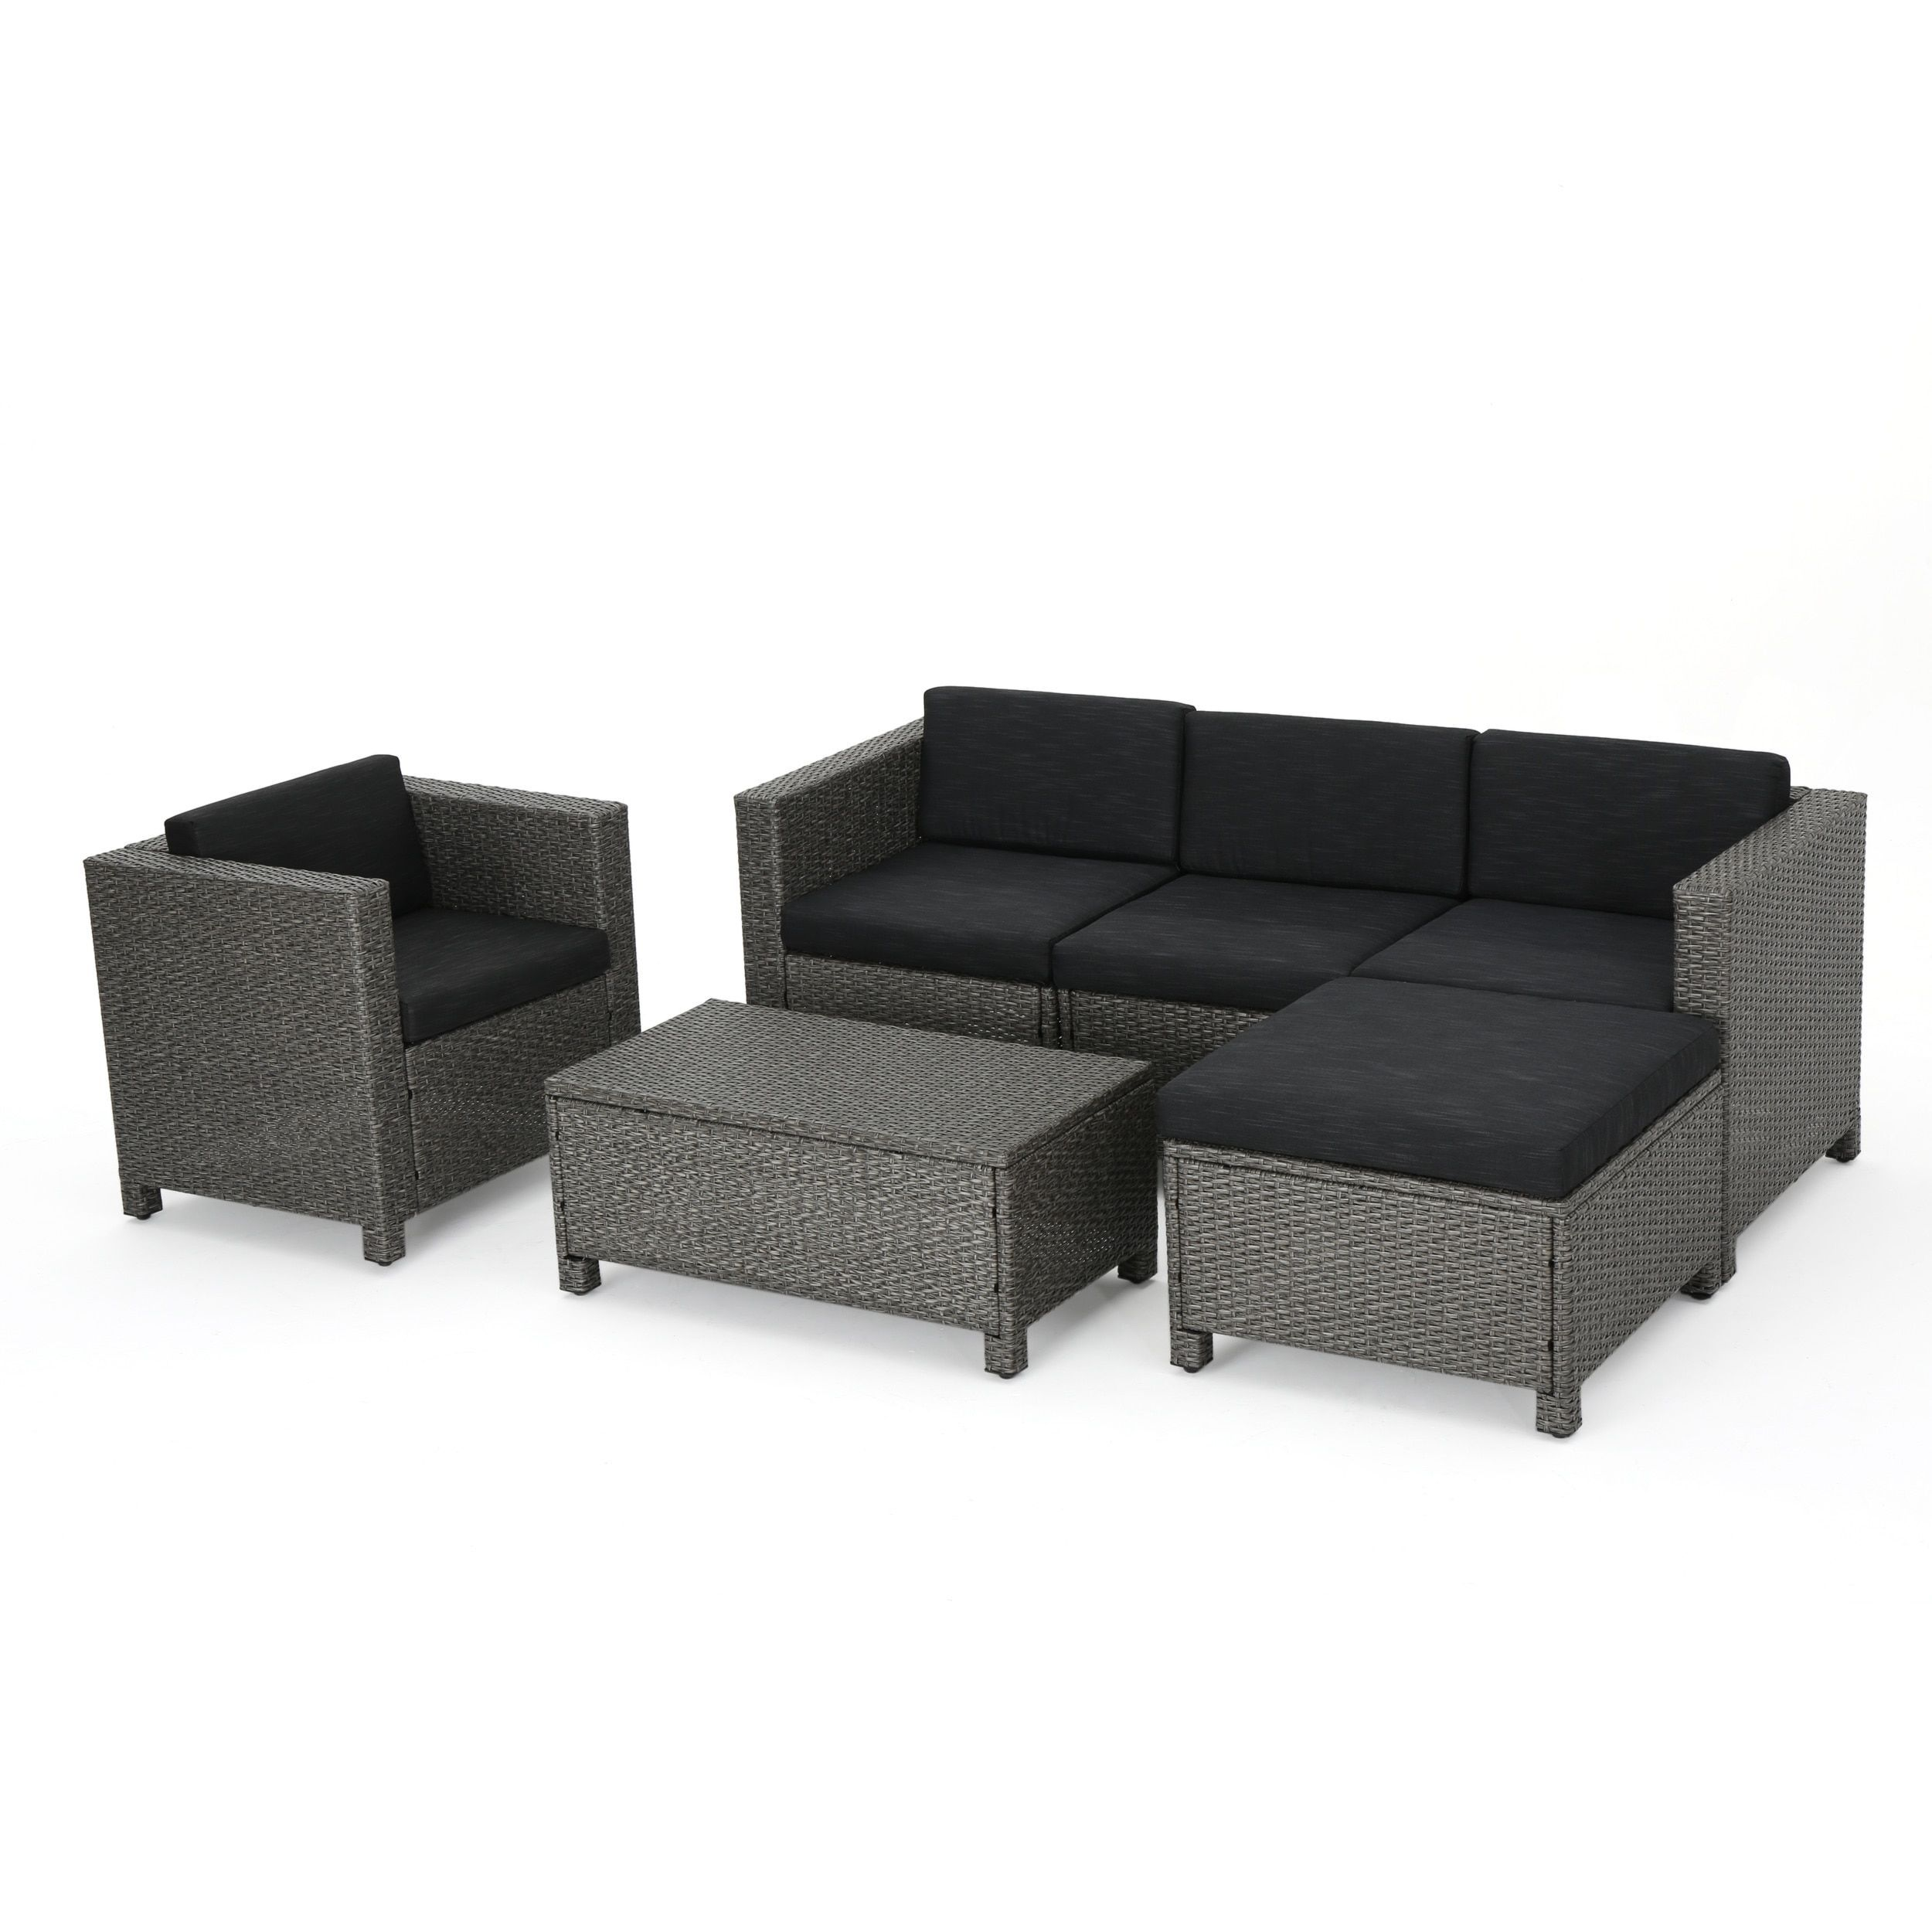 Outdoor Sofas, Chairs U0026 Sectionals For Less. Outdoor SectionalSectional  SofasChristopher KnightBeige ...